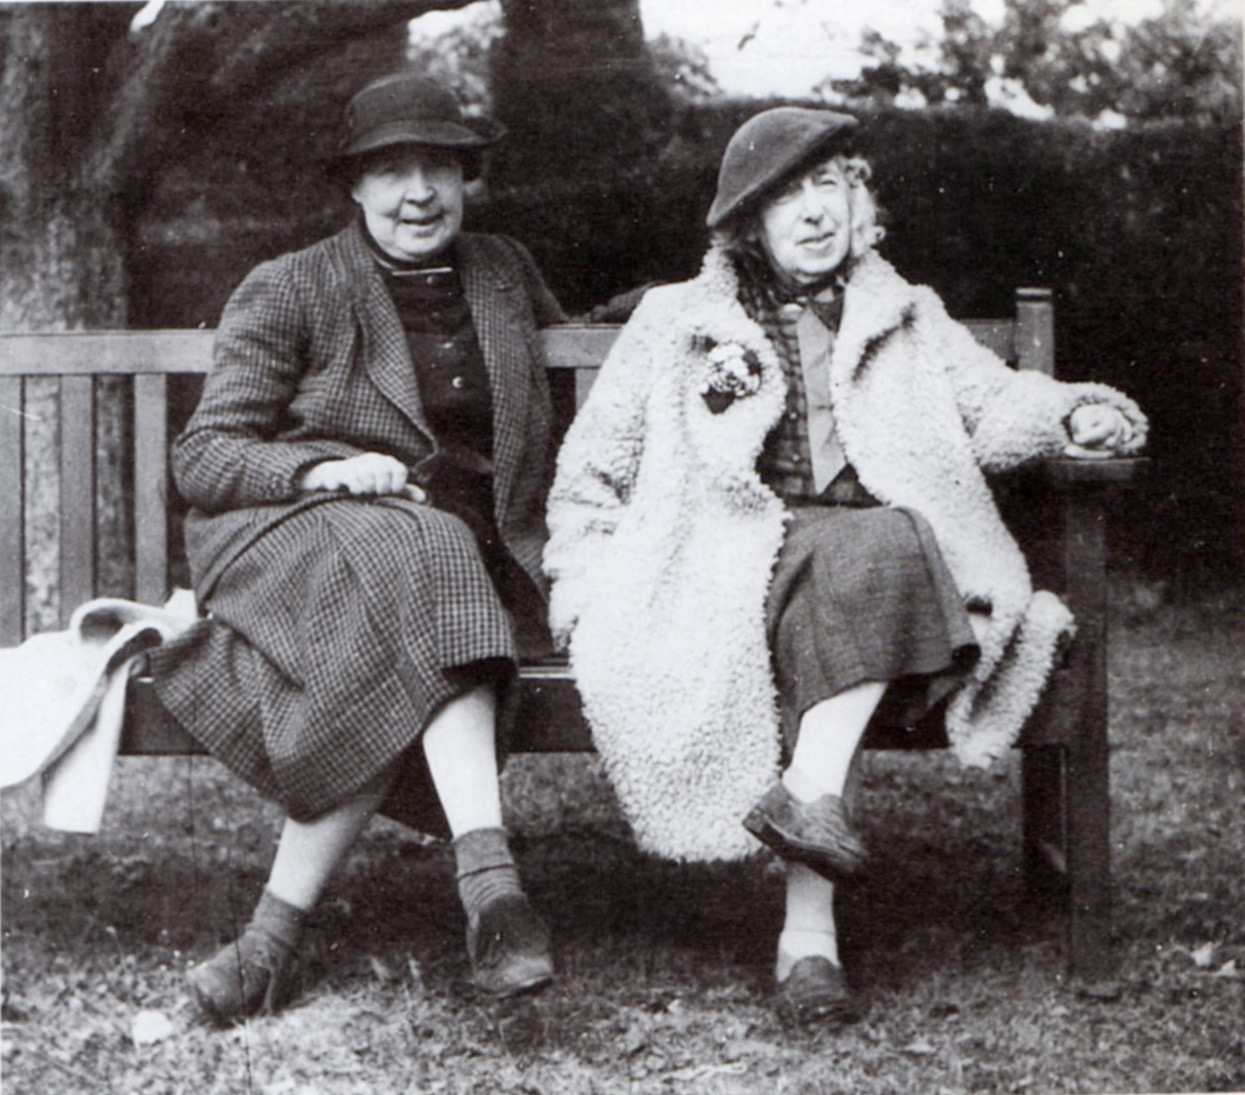 Frances Hodgkins (right) and Dorothy Selby at The Croft, 1940 McCormick,  Portrait of Frances Hodgkins , 1981.